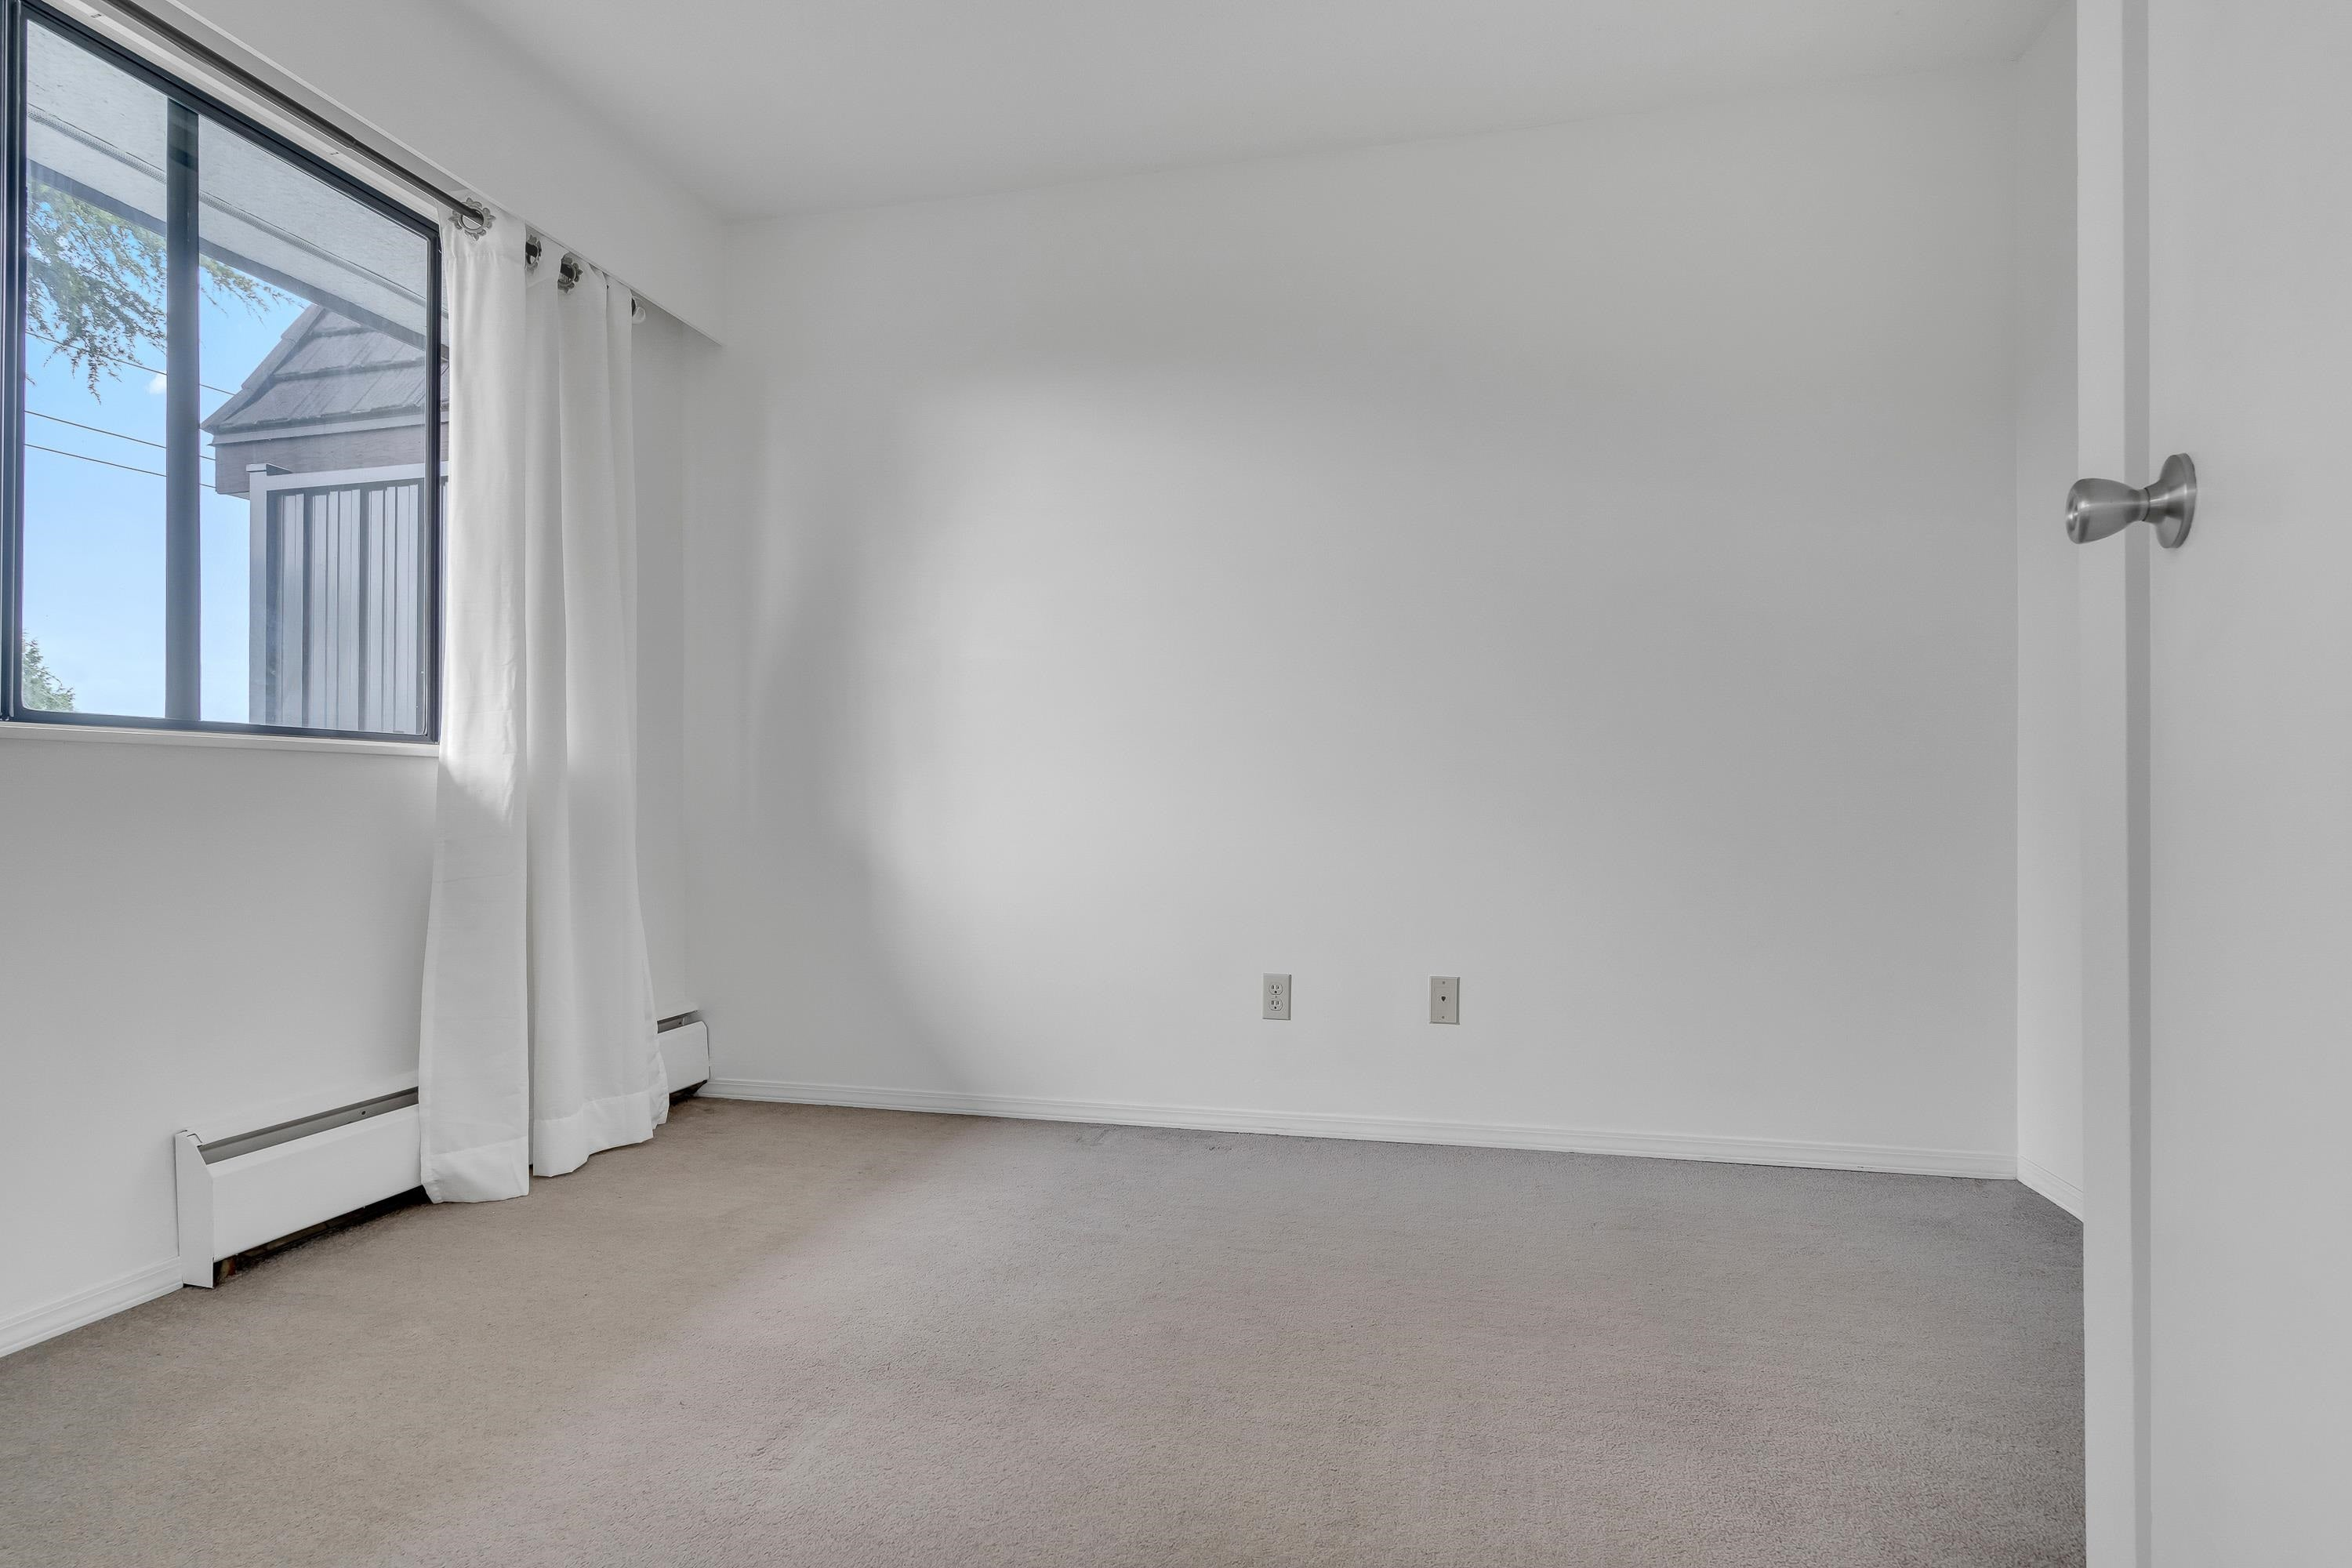 208 270 WEST 3RD STREET - Lower Lonsdale Apartment/Condo for sale, 1 Bedroom (R2615758) - #14